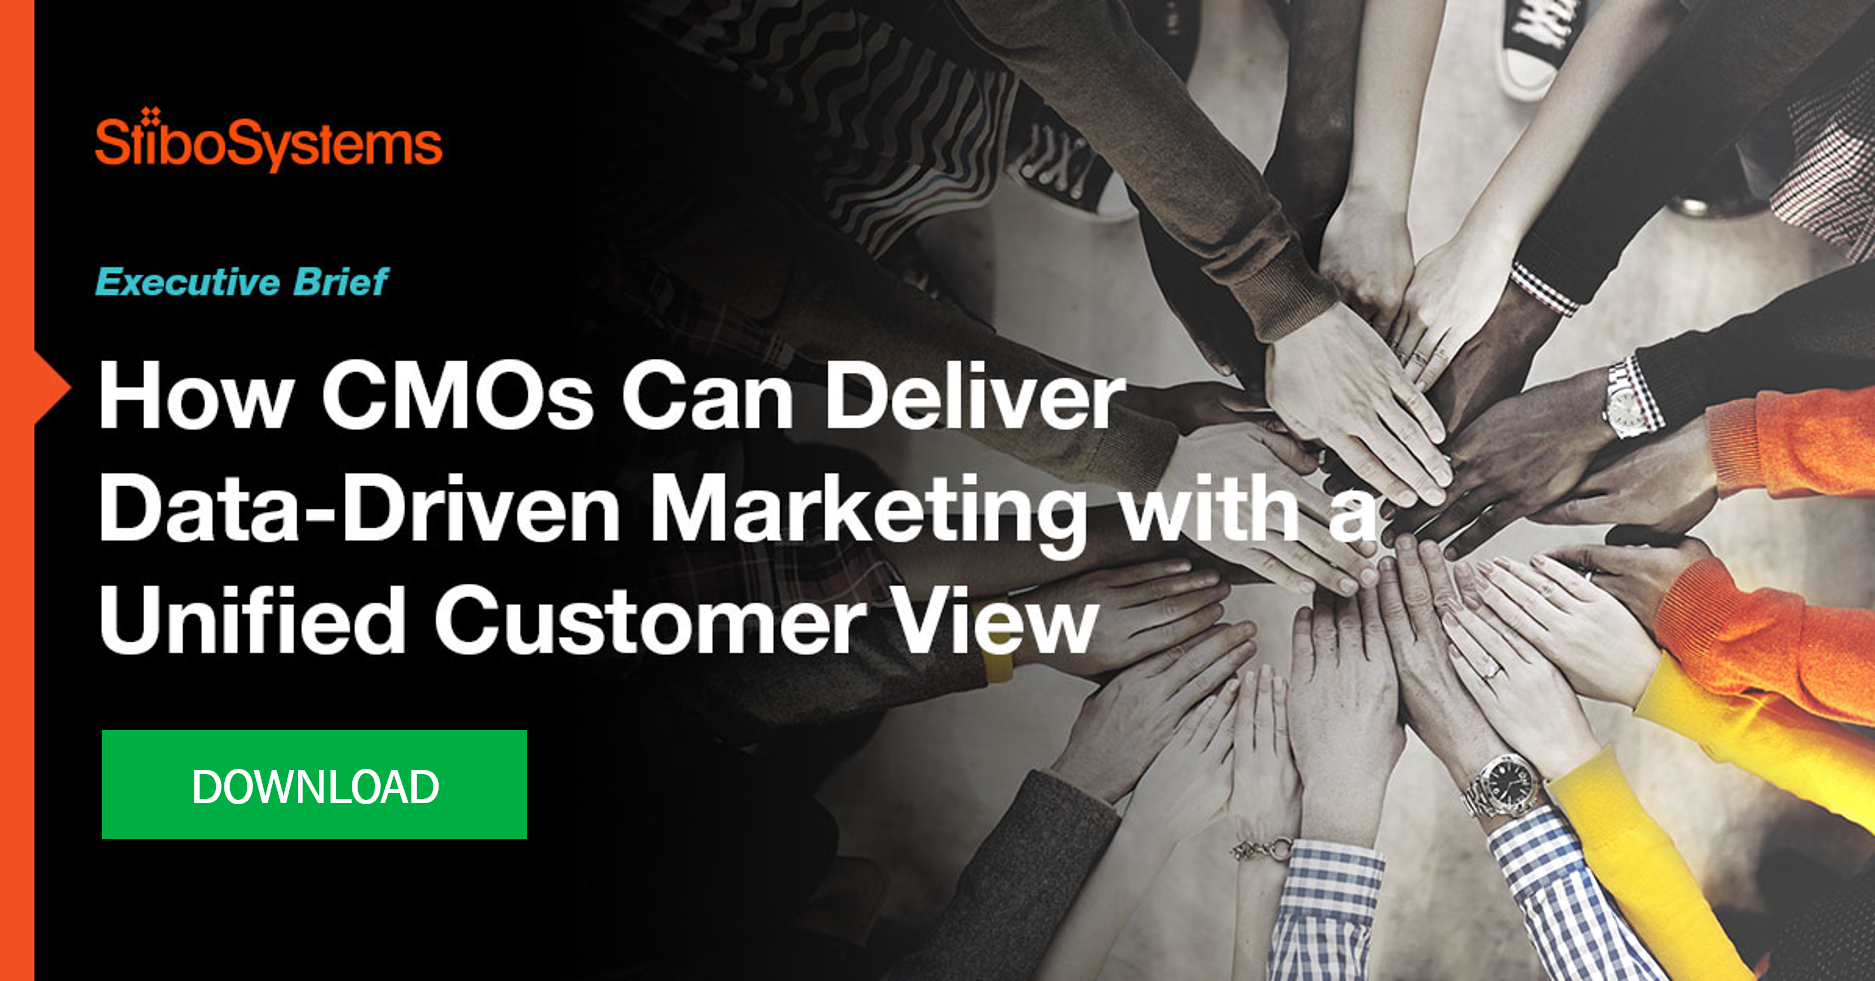 Executive brief: How CMOs can deliver data-driven marketing with a unified customer view